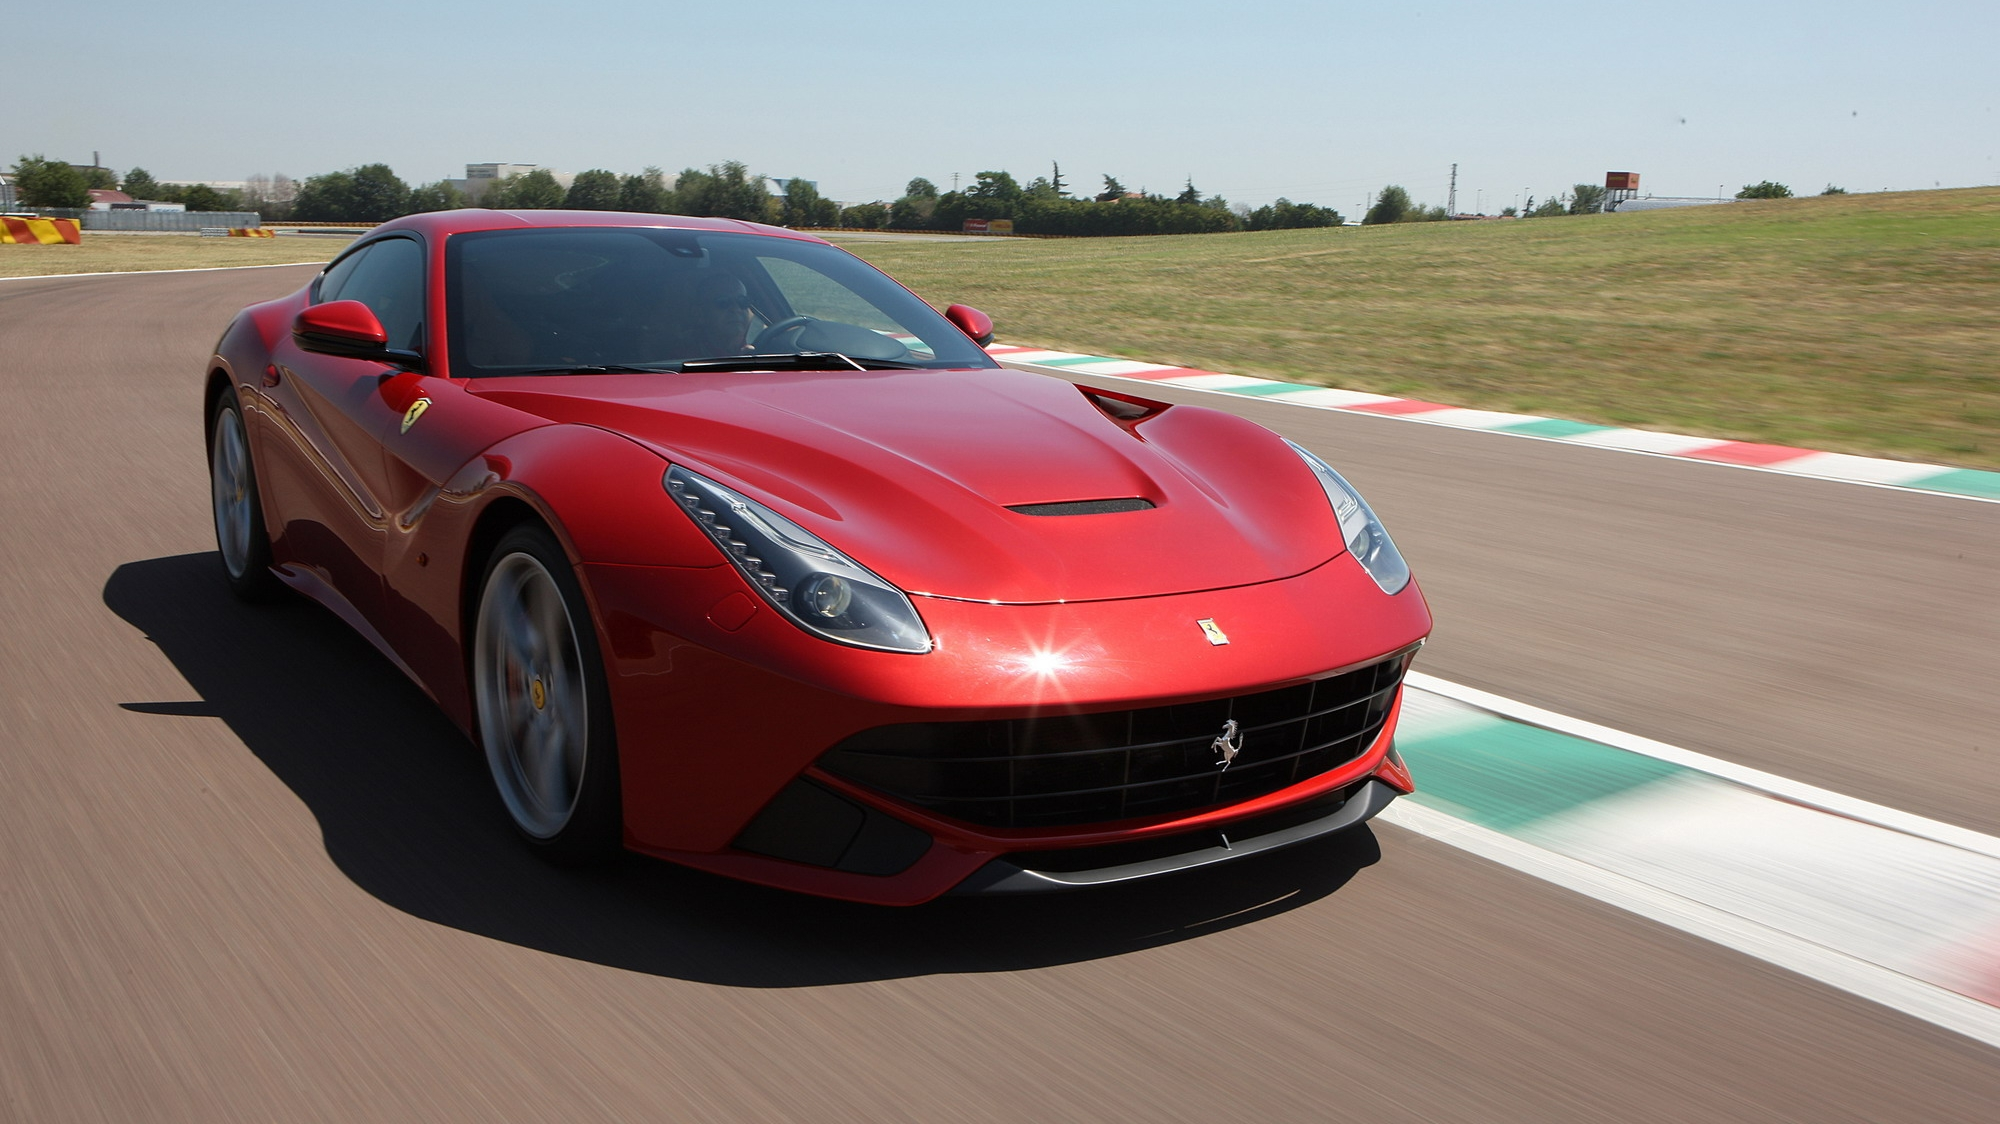 Updated Ferrari F12 Berlinetta Will Deliver 780 Hp And Be 220 Lbs